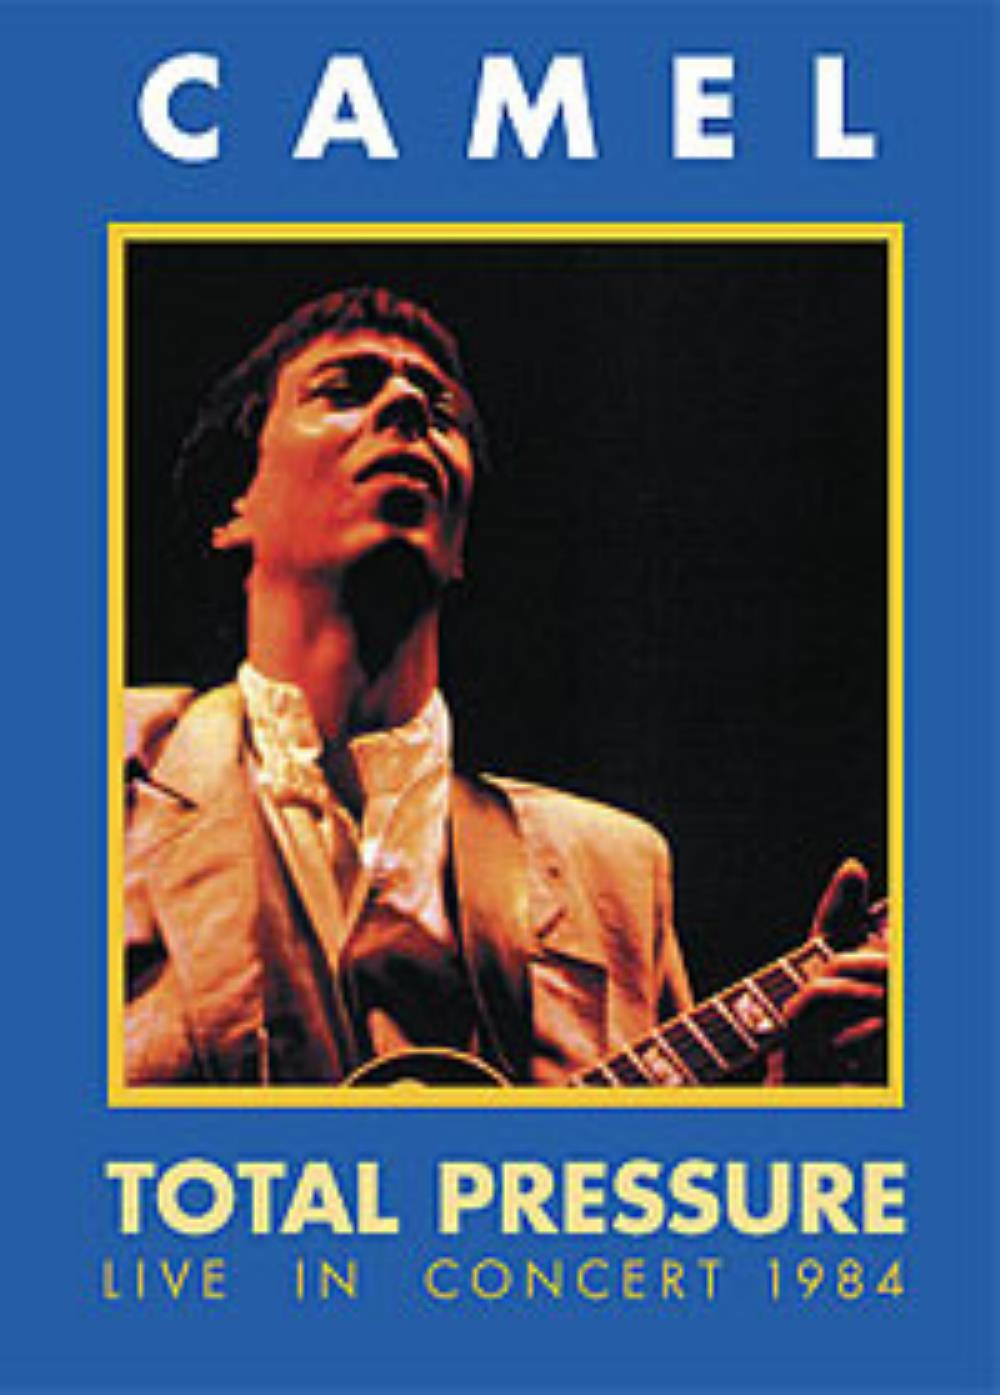 Camel Total Pressure - Live In Concert 1984 album cover